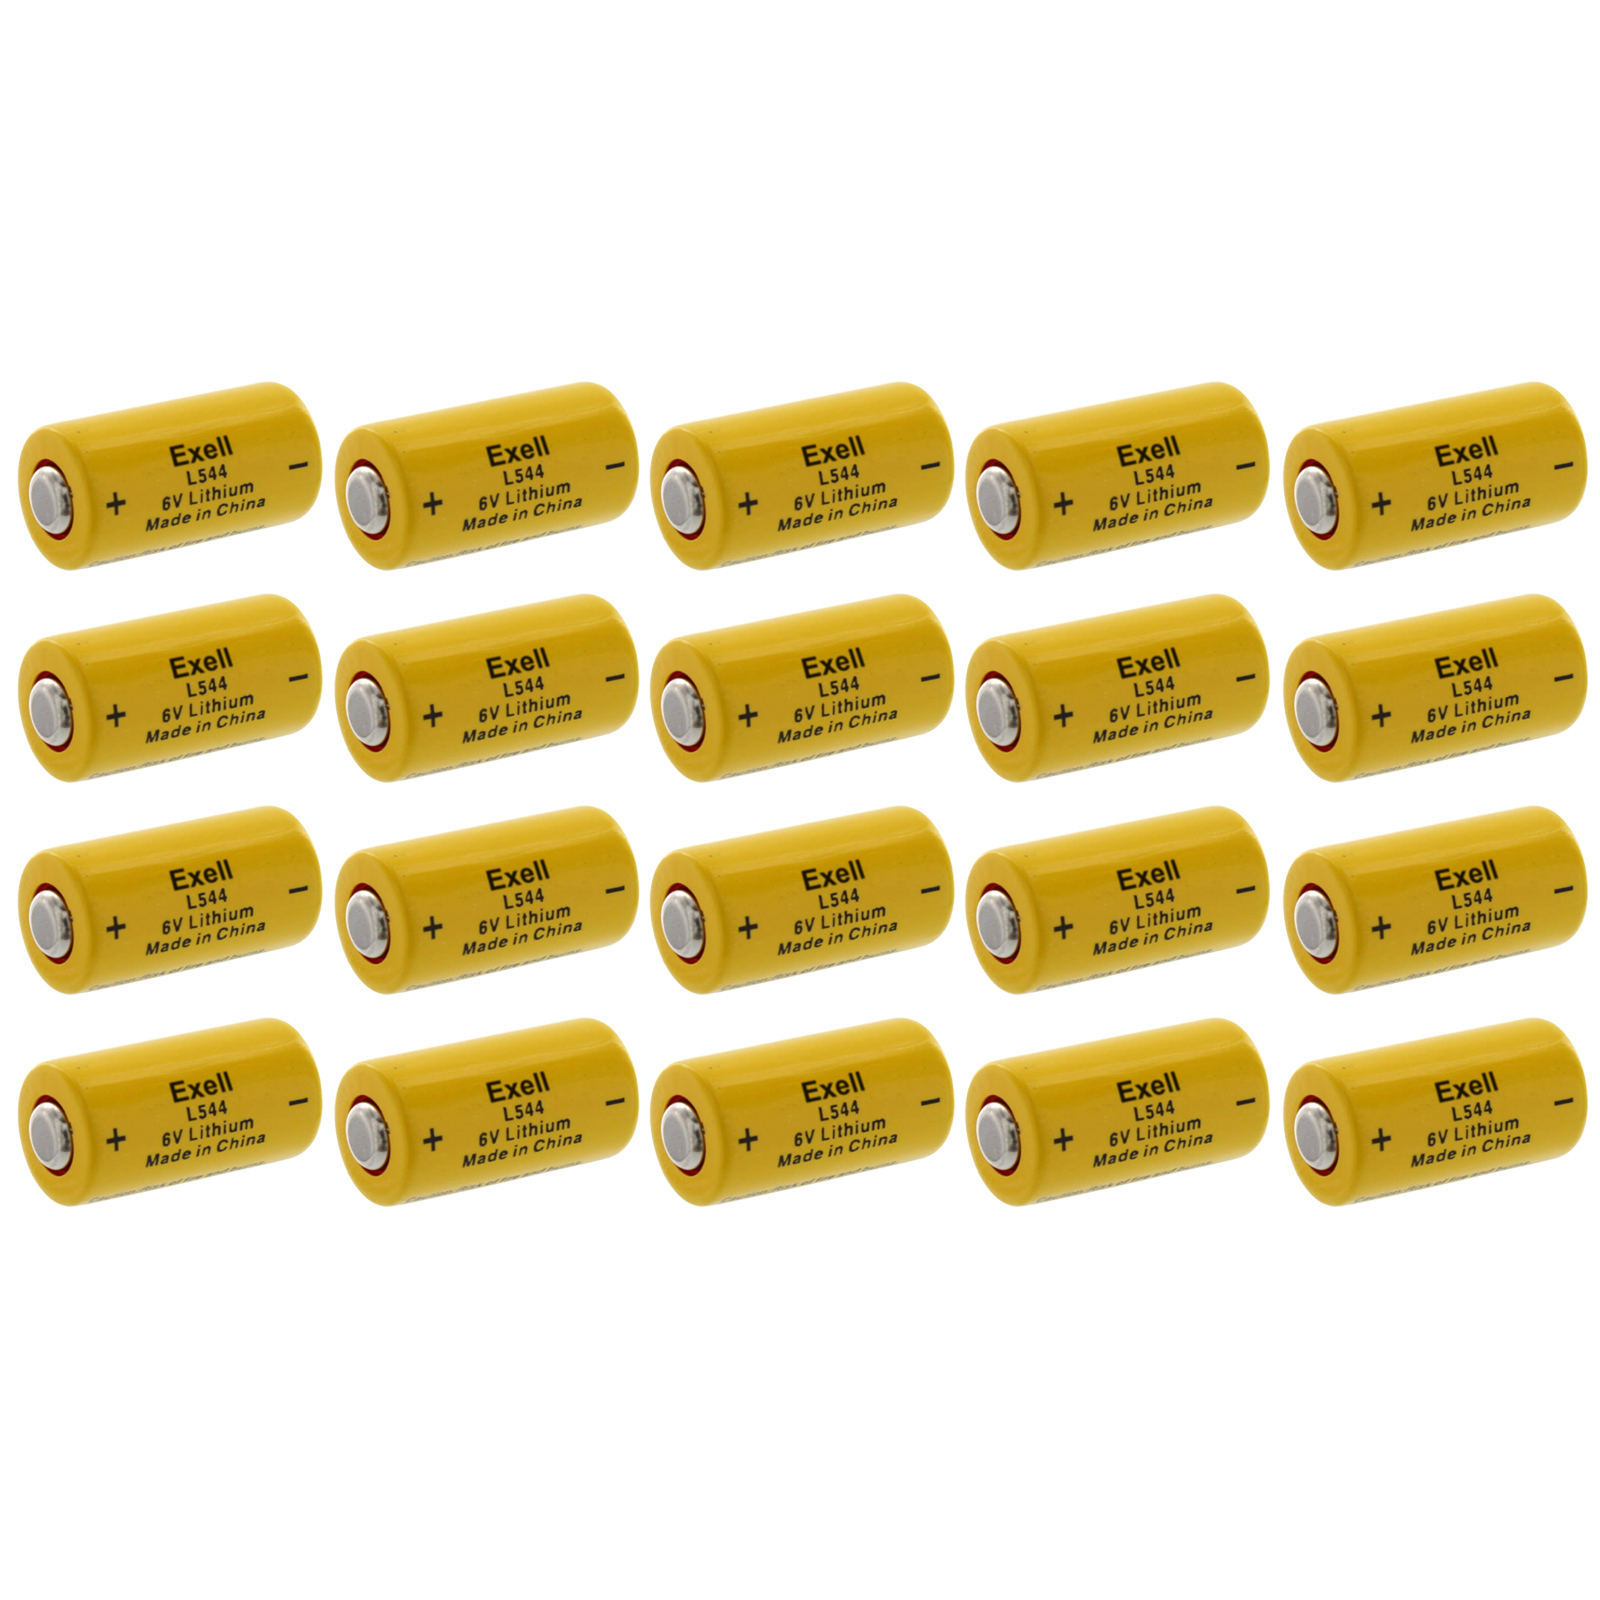 20x Exell L544 6V Lithium Battery Replaces K28L V28PXL 2C...